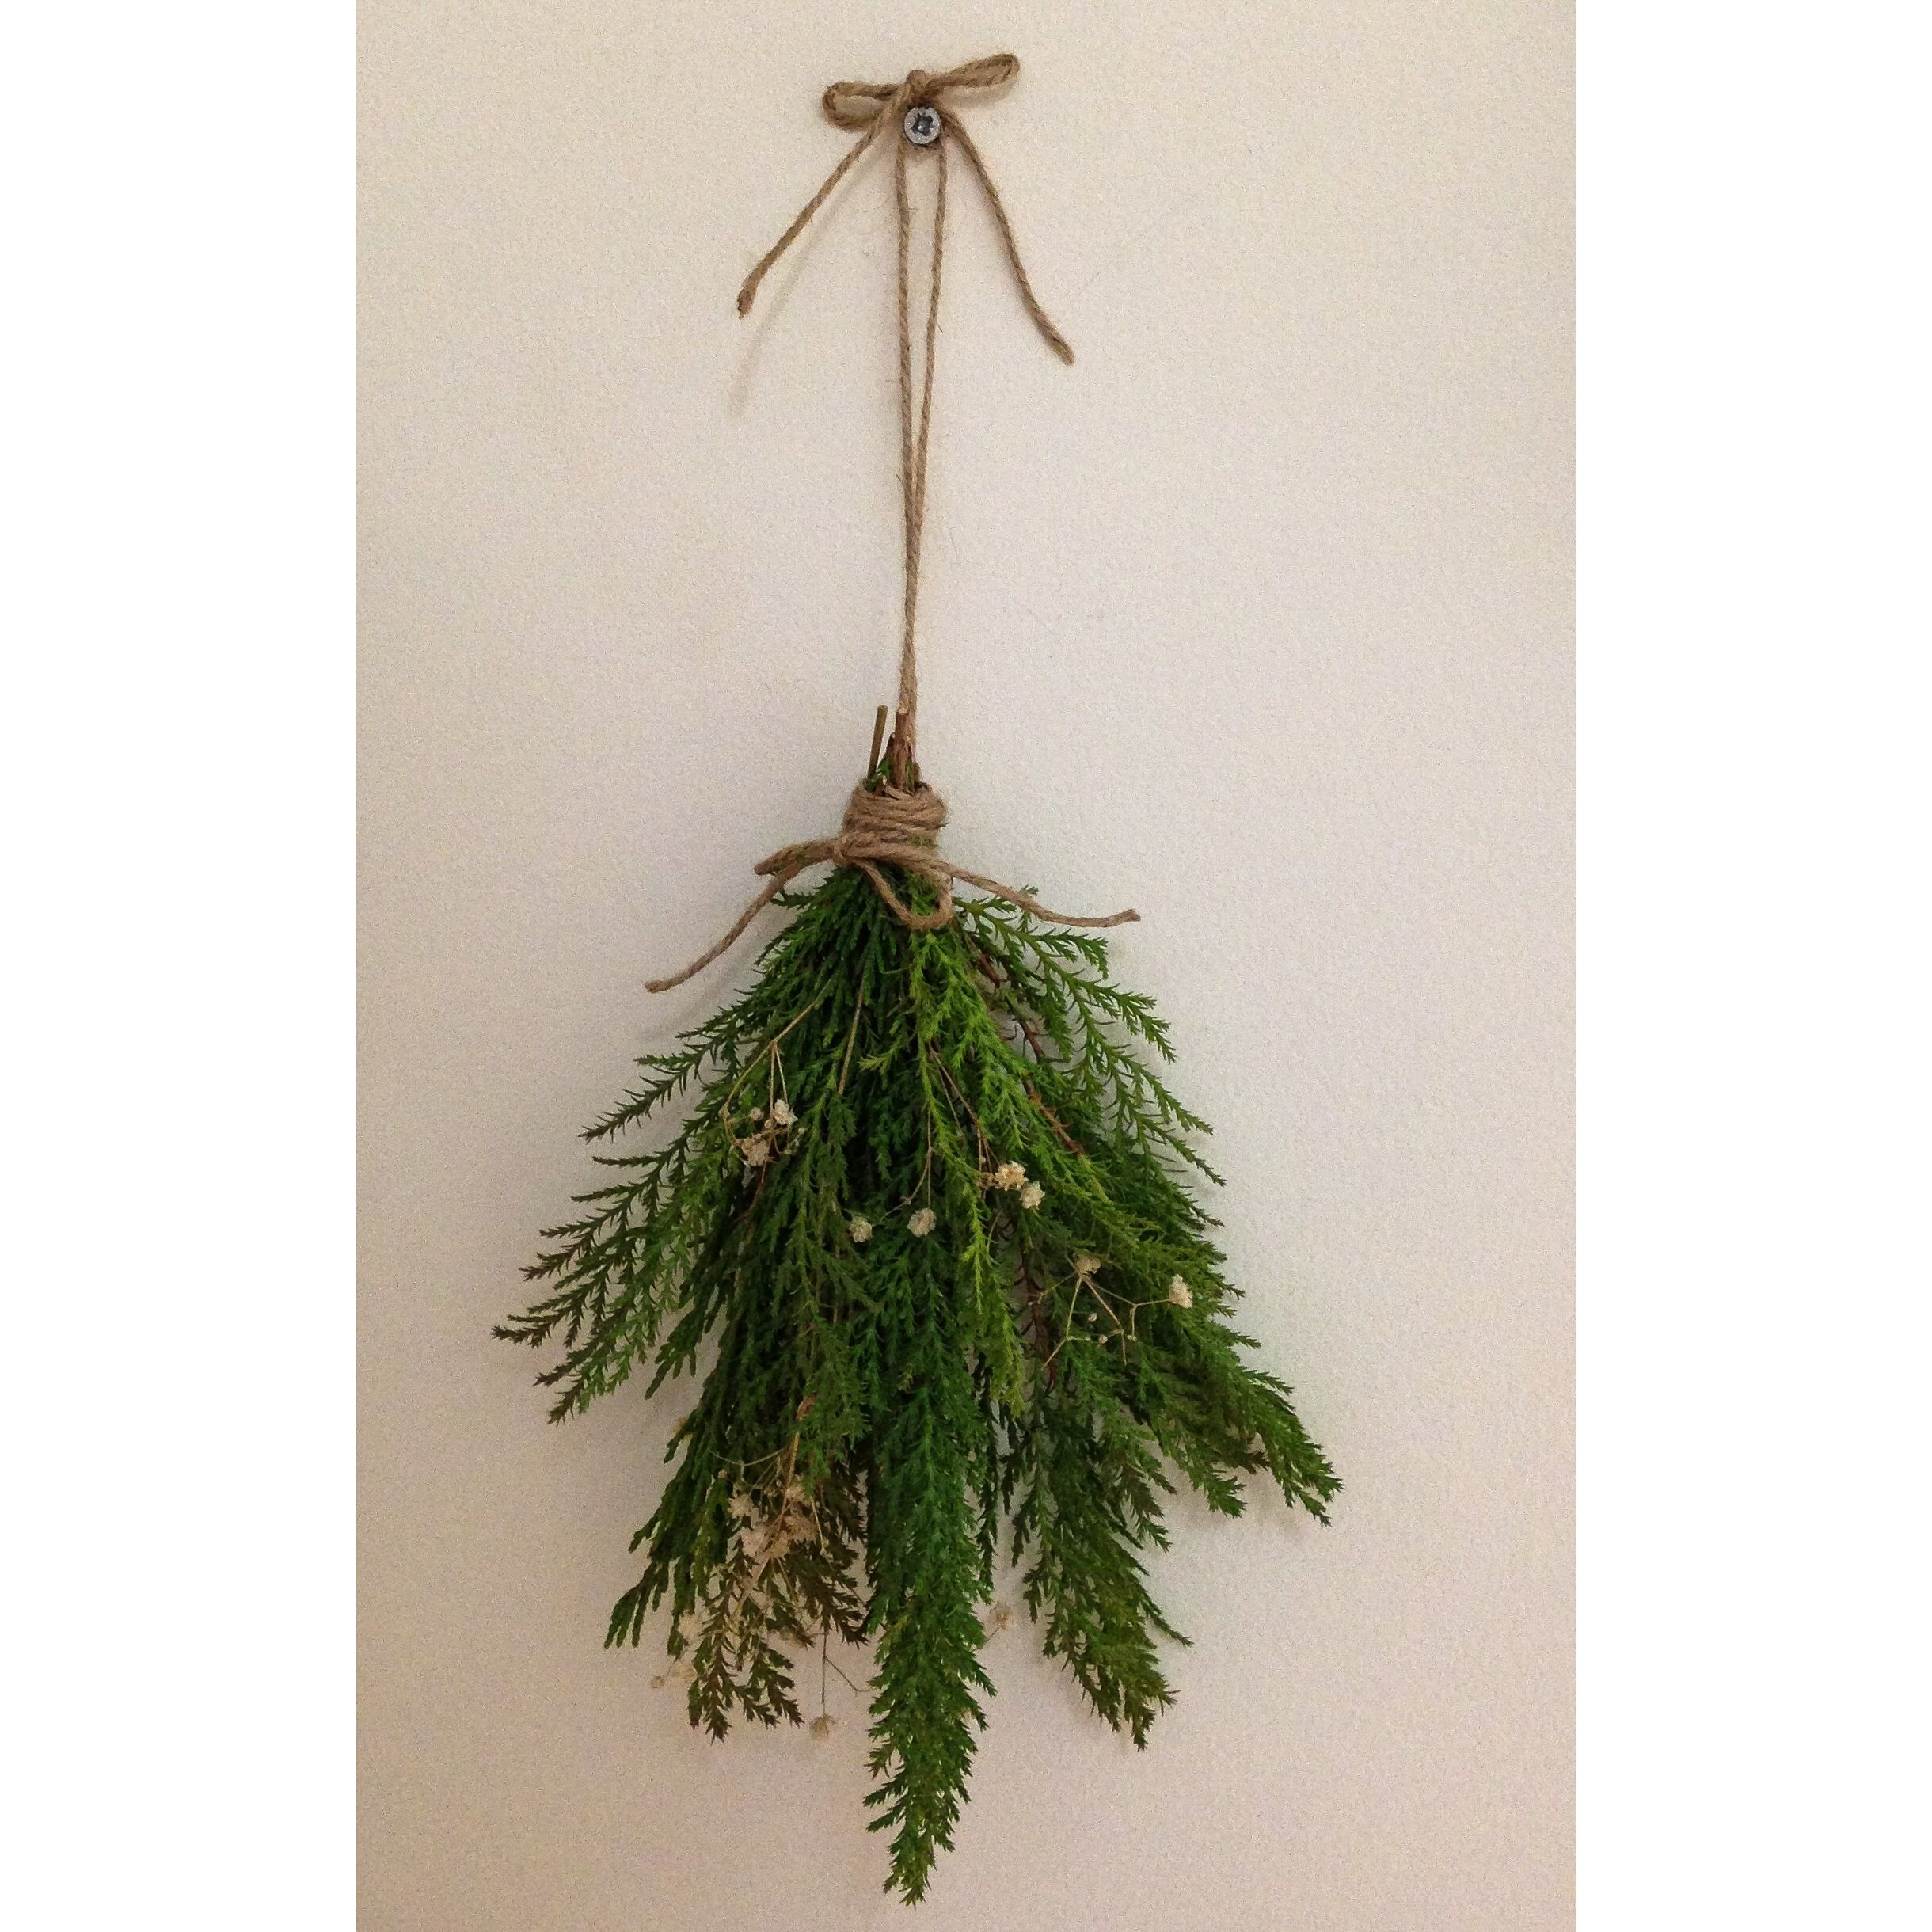 Fresh pine needles - love this little extra touch of Christmas which will add that wonderful pine smell!